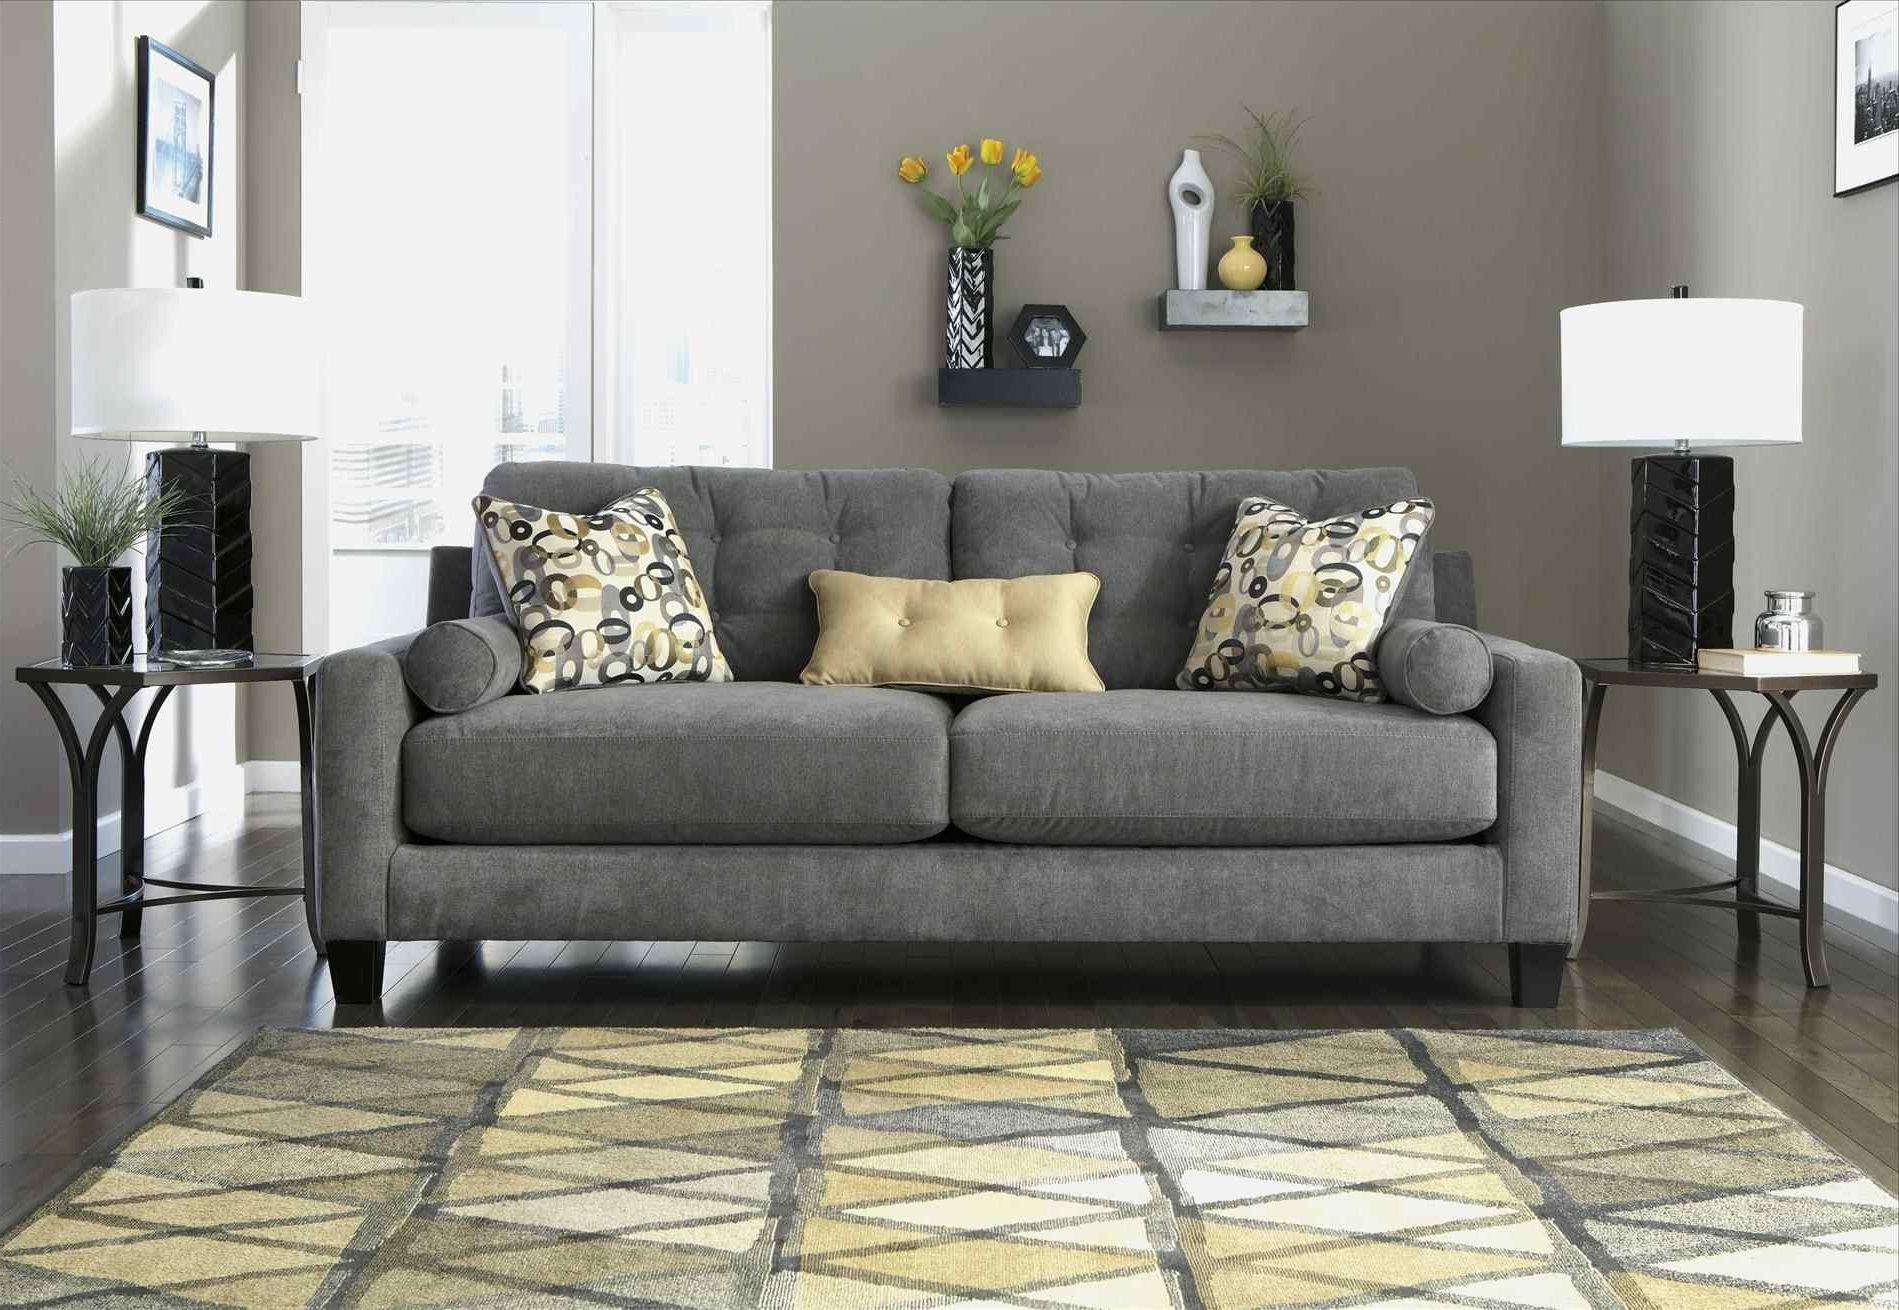 Most Recently Released Couch : W Accent Pillows Sam Levitz Furniture Brindon Sofas Living With Sam Levitz Sectional Sofas (View 13 of 15)